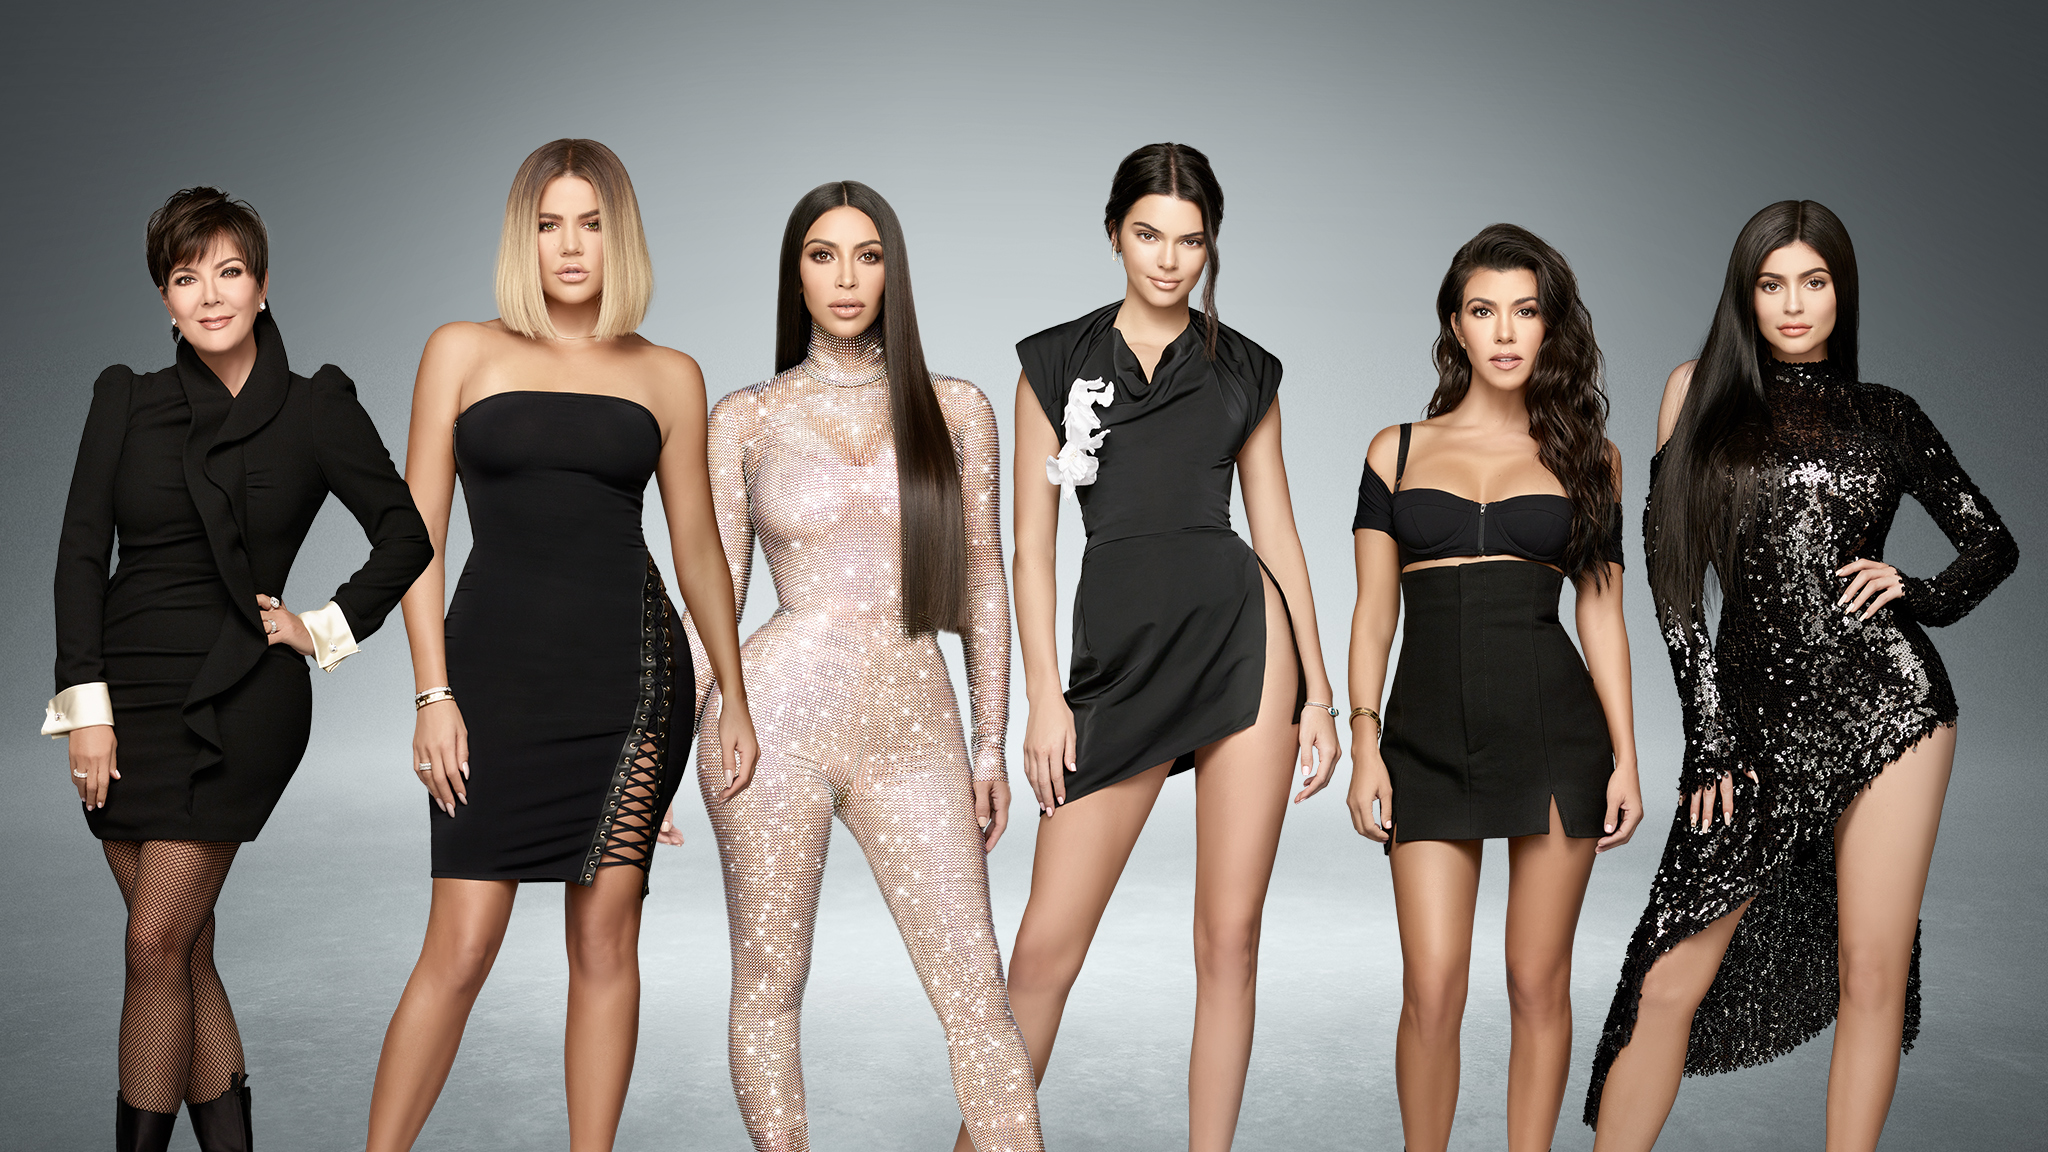 keeping up with the kardashians season 12 watch online free